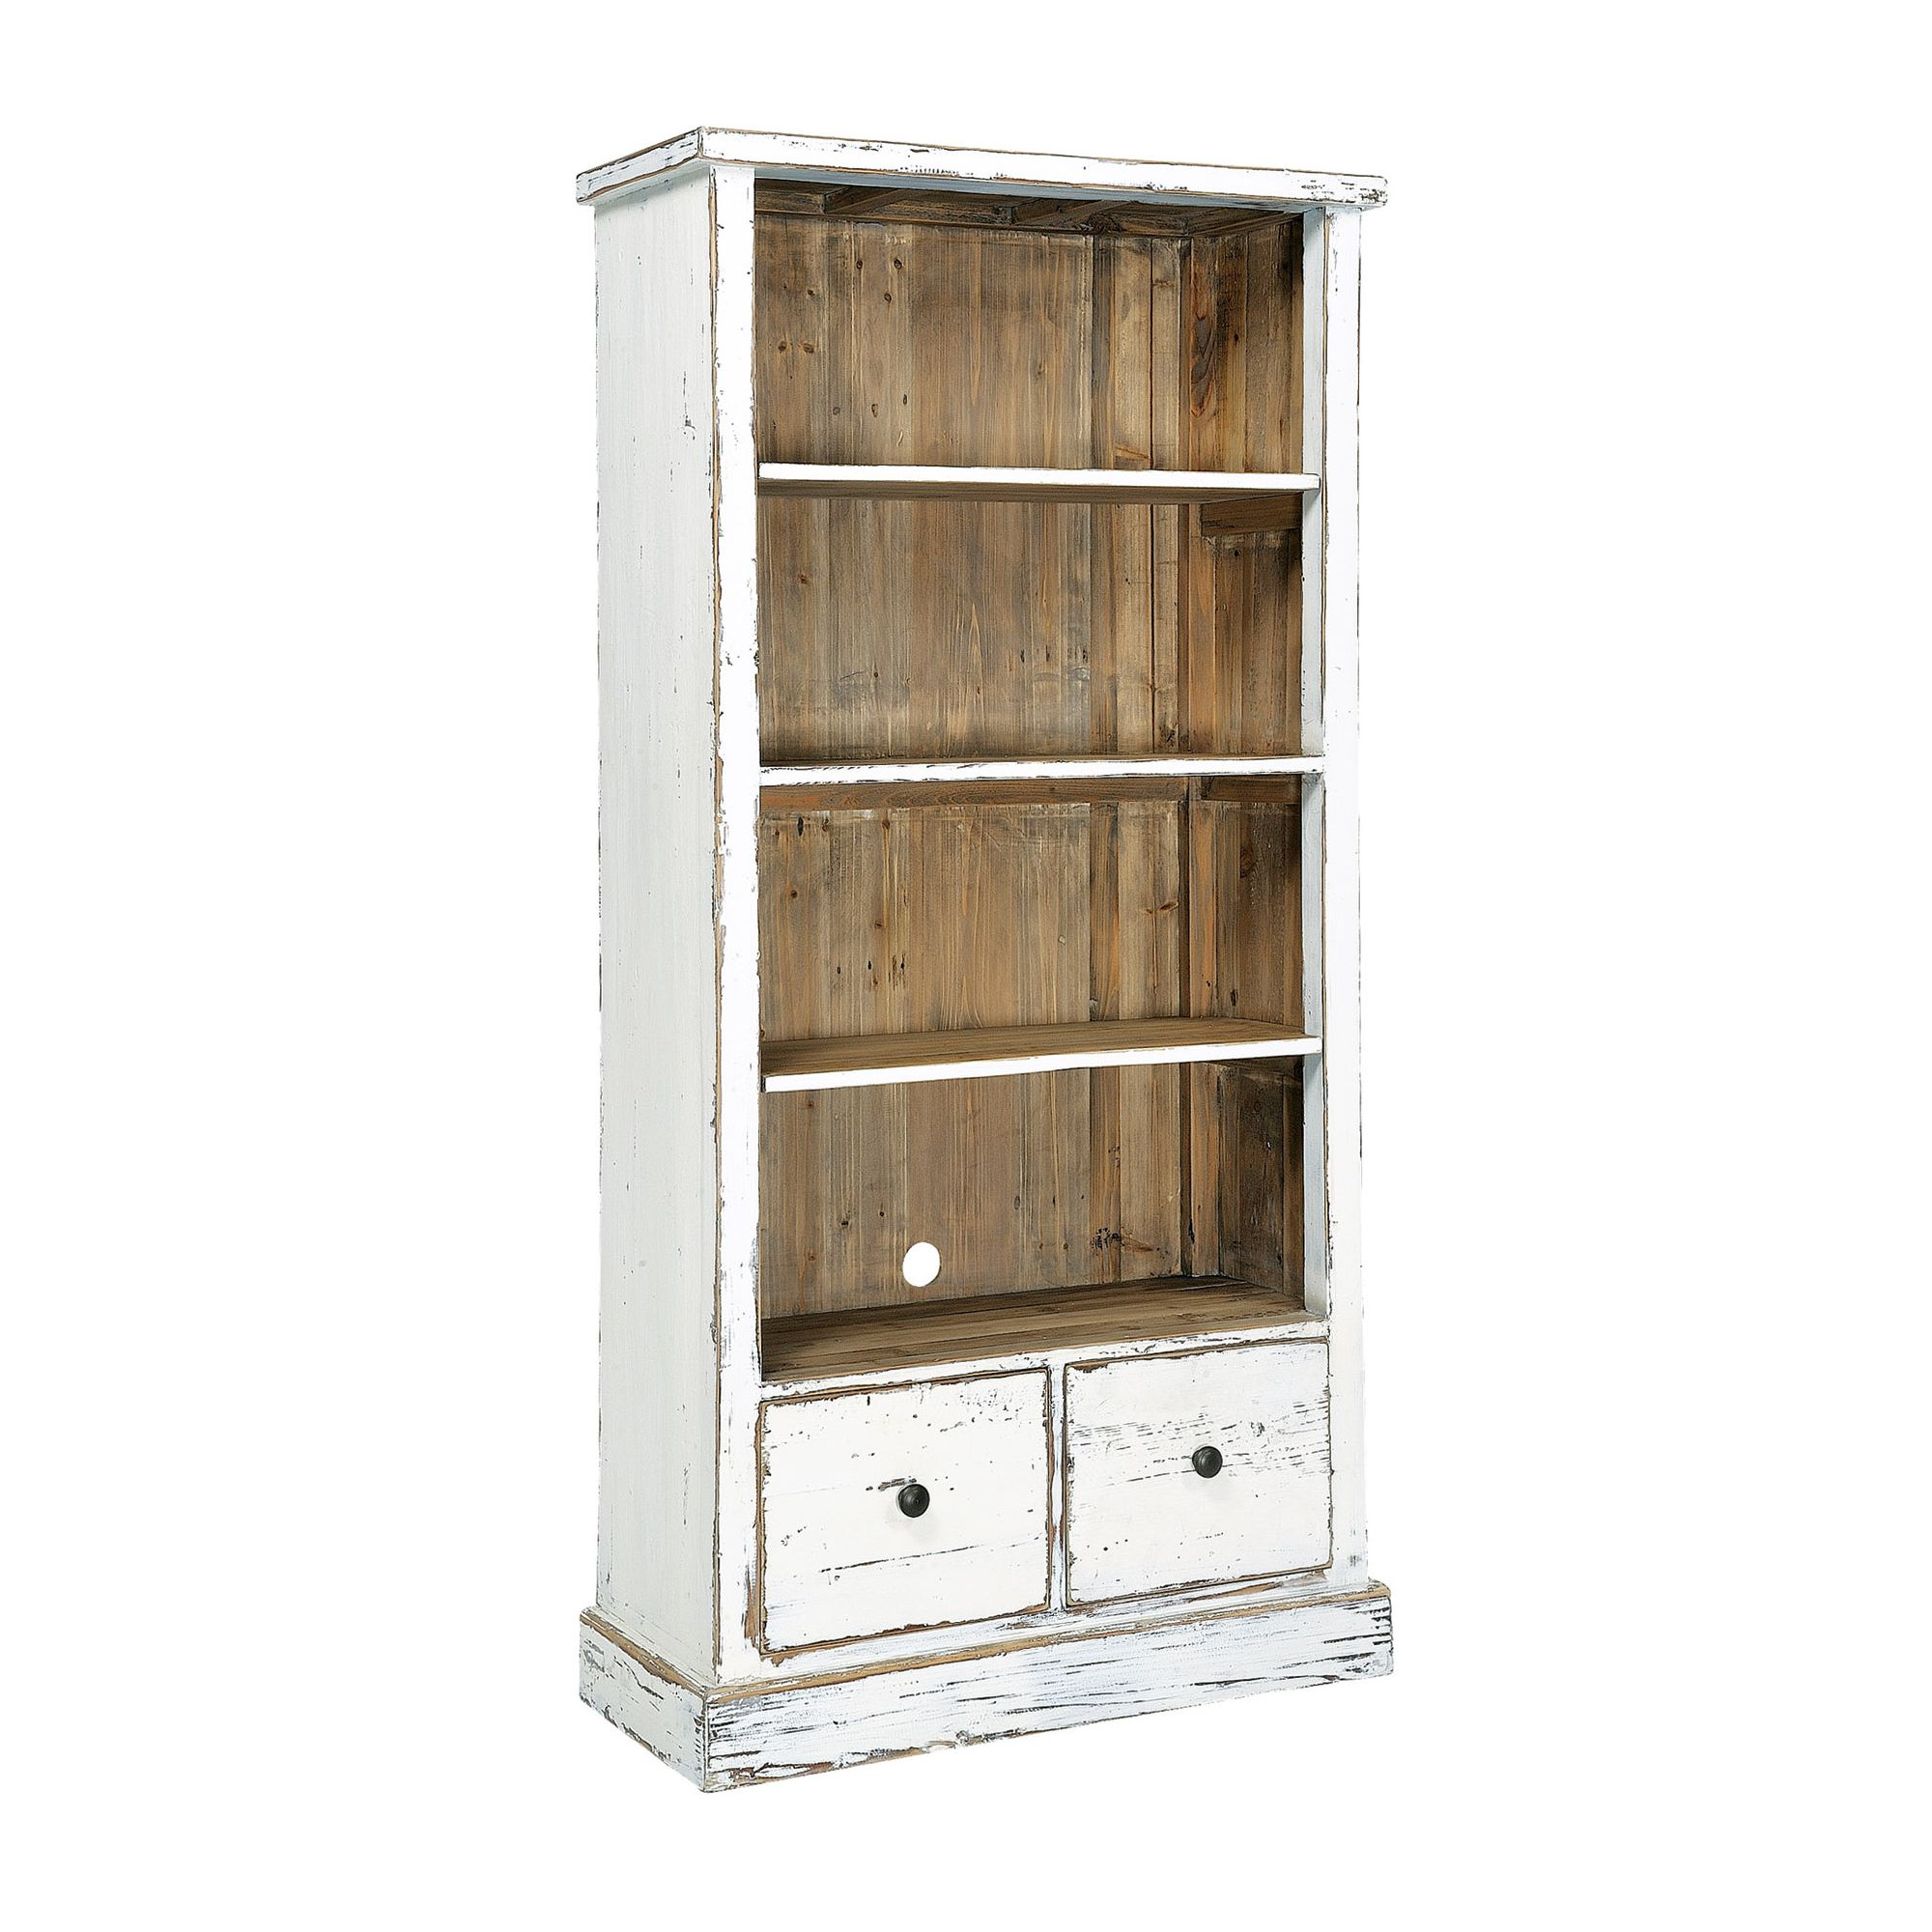 Rowico Aspen Bookcase - White Distress Painted at Tesco Direct